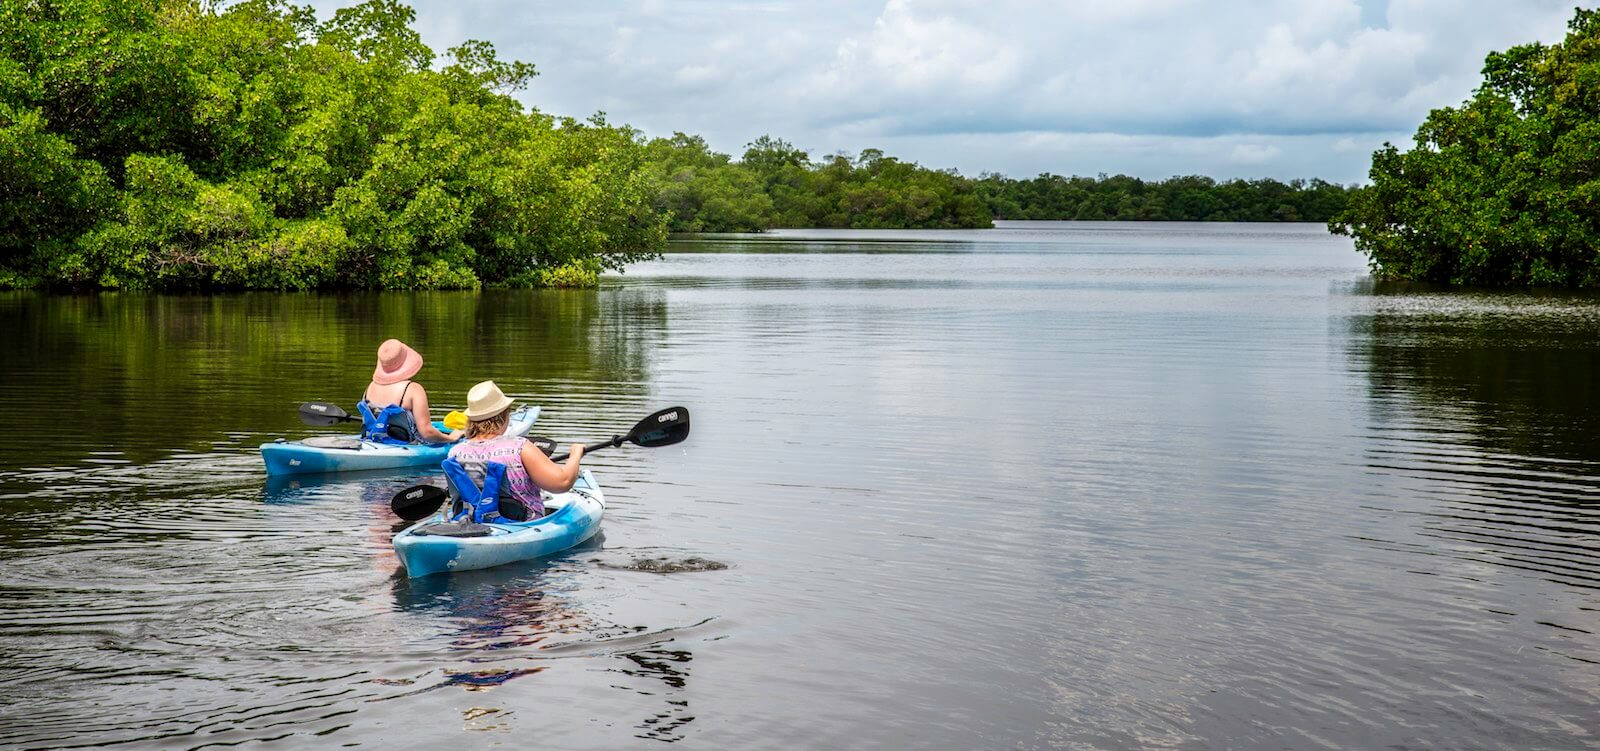 MustDo.com | Sanibel Island, Florida kayak tours. Photo by Jennifer Brinkman.